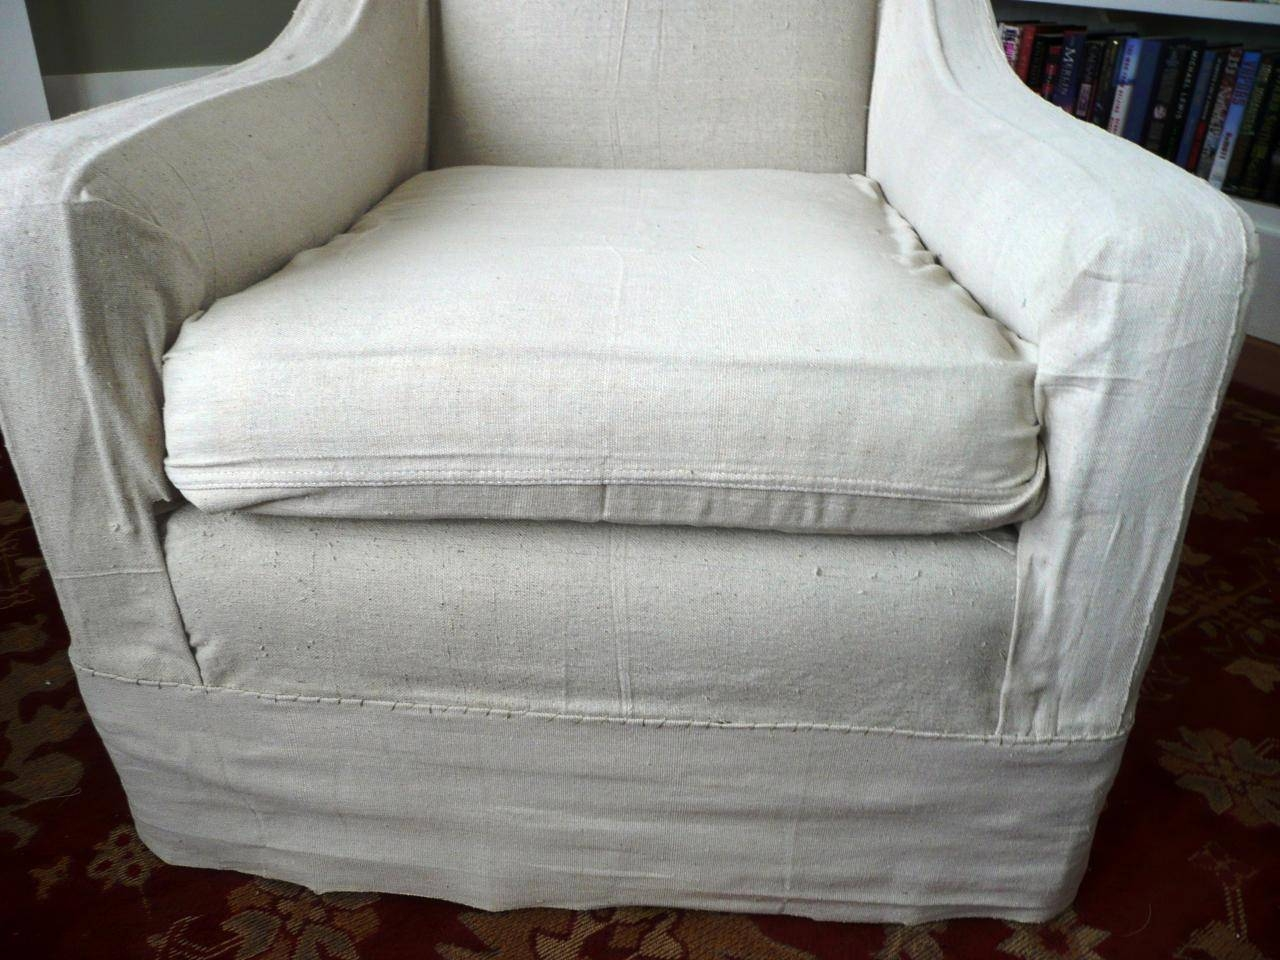 How To Make Arm Chair Slipcovers For Less Than $30 | How Tos | Diy With Regard To Slipcovers For Chairs And Sofas (View 10 of 15)